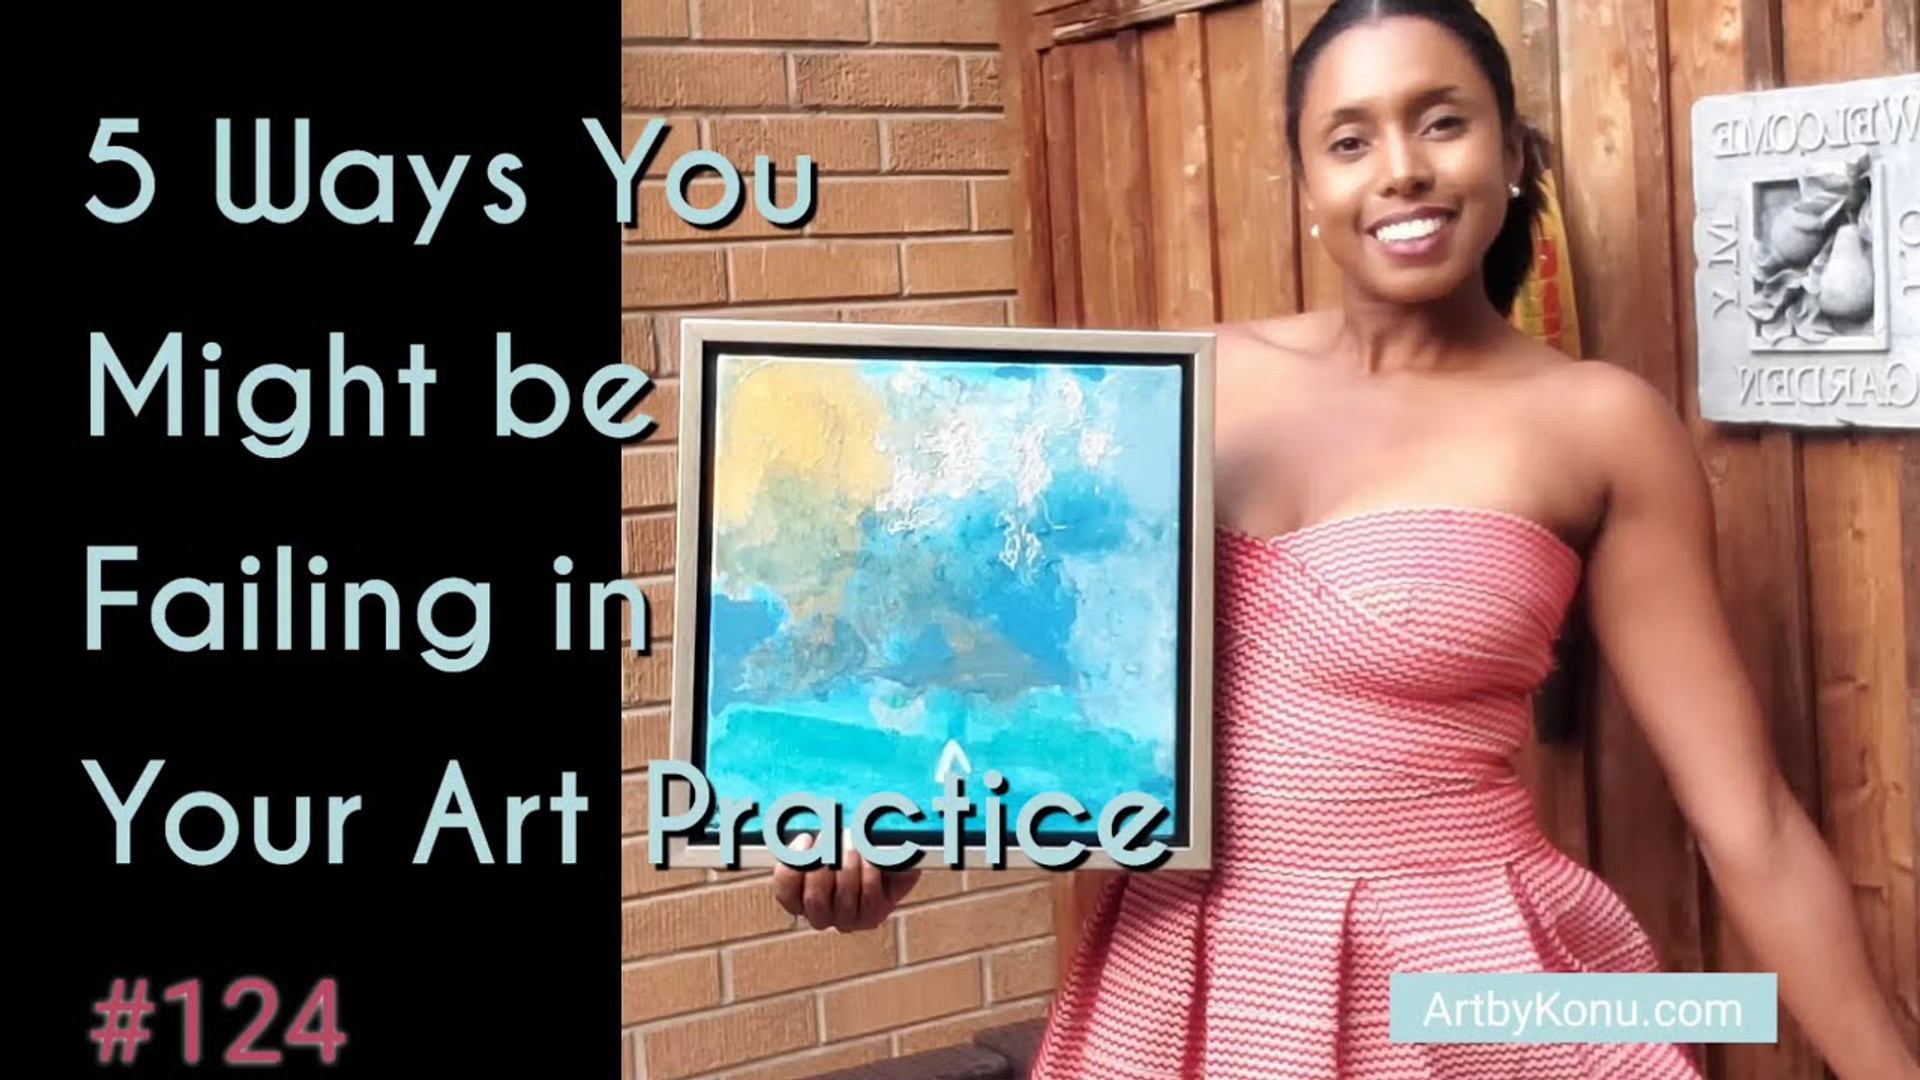 5 Ways you might be failing in your art practice